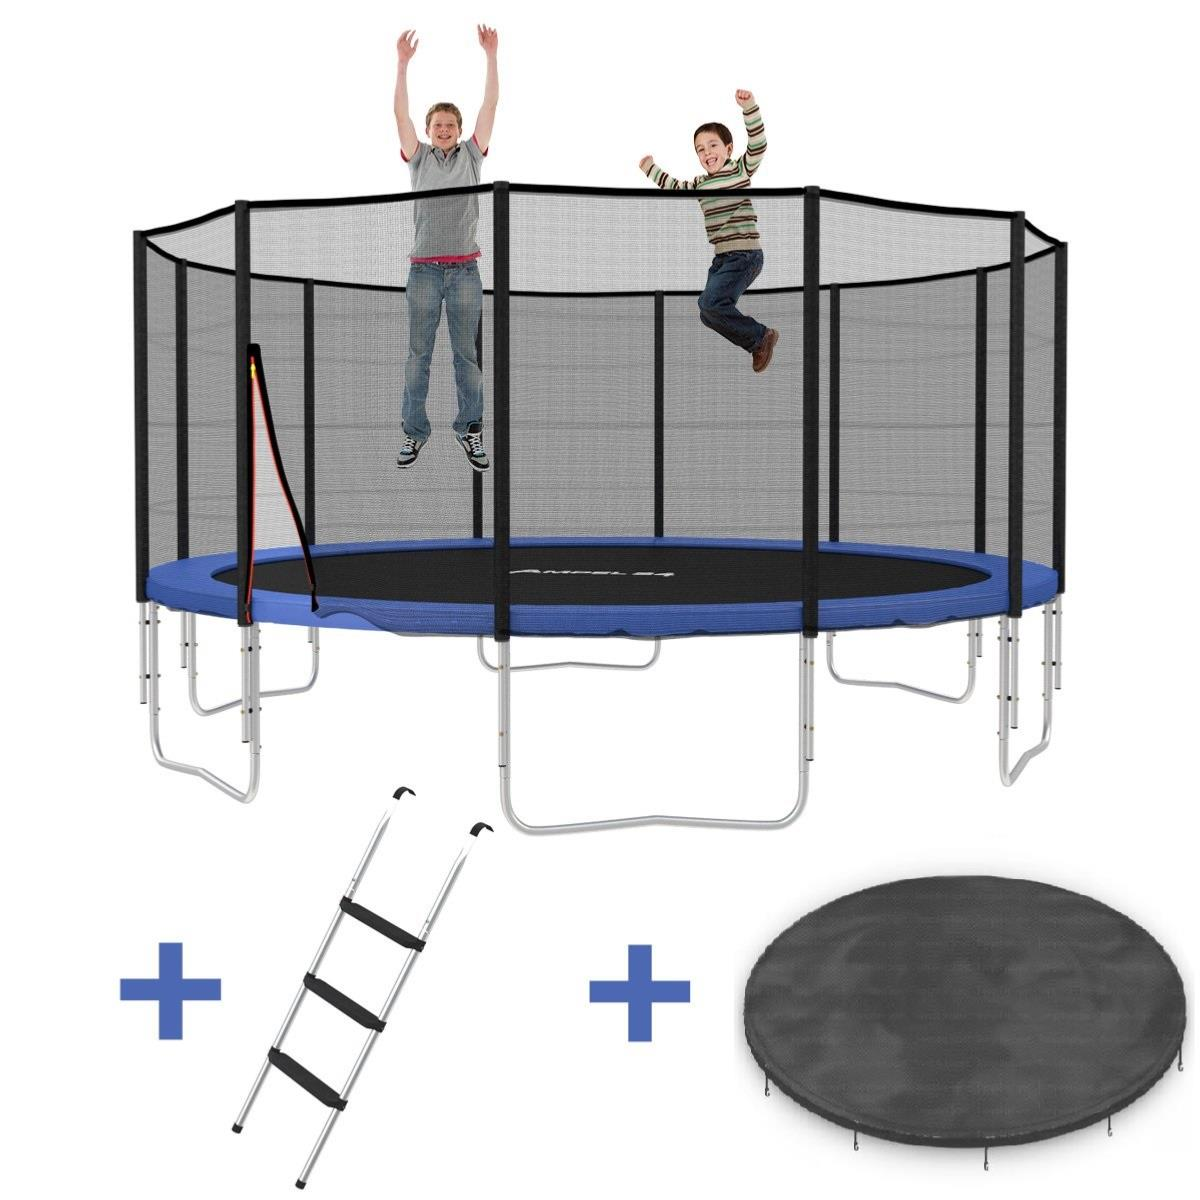 trampoline 490 cm de diam tre haute qualit complet. Black Bedroom Furniture Sets. Home Design Ideas